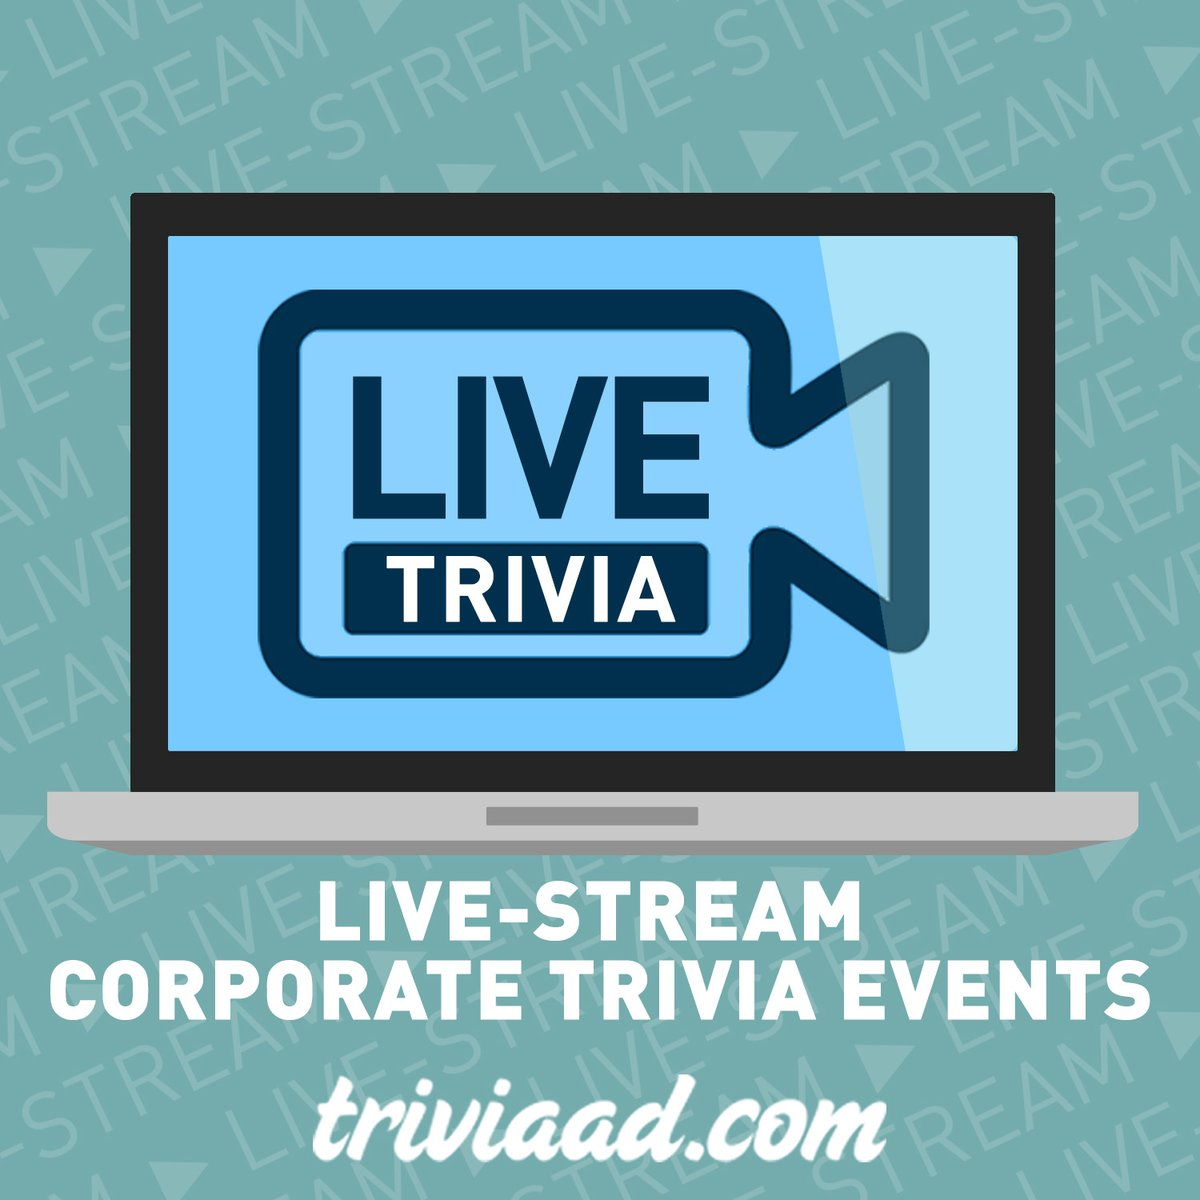 We're here to host your corporate or private virtual #trivia event. For more information, reach out to info@triviaad.com! #VirtualEvents #OnlineEvents #Zoom #VirtualTeamBuilding #TeamBuilding #VirtualHappyHour #SocialDistancingpic.twitter.com/2pa1XPHjiM